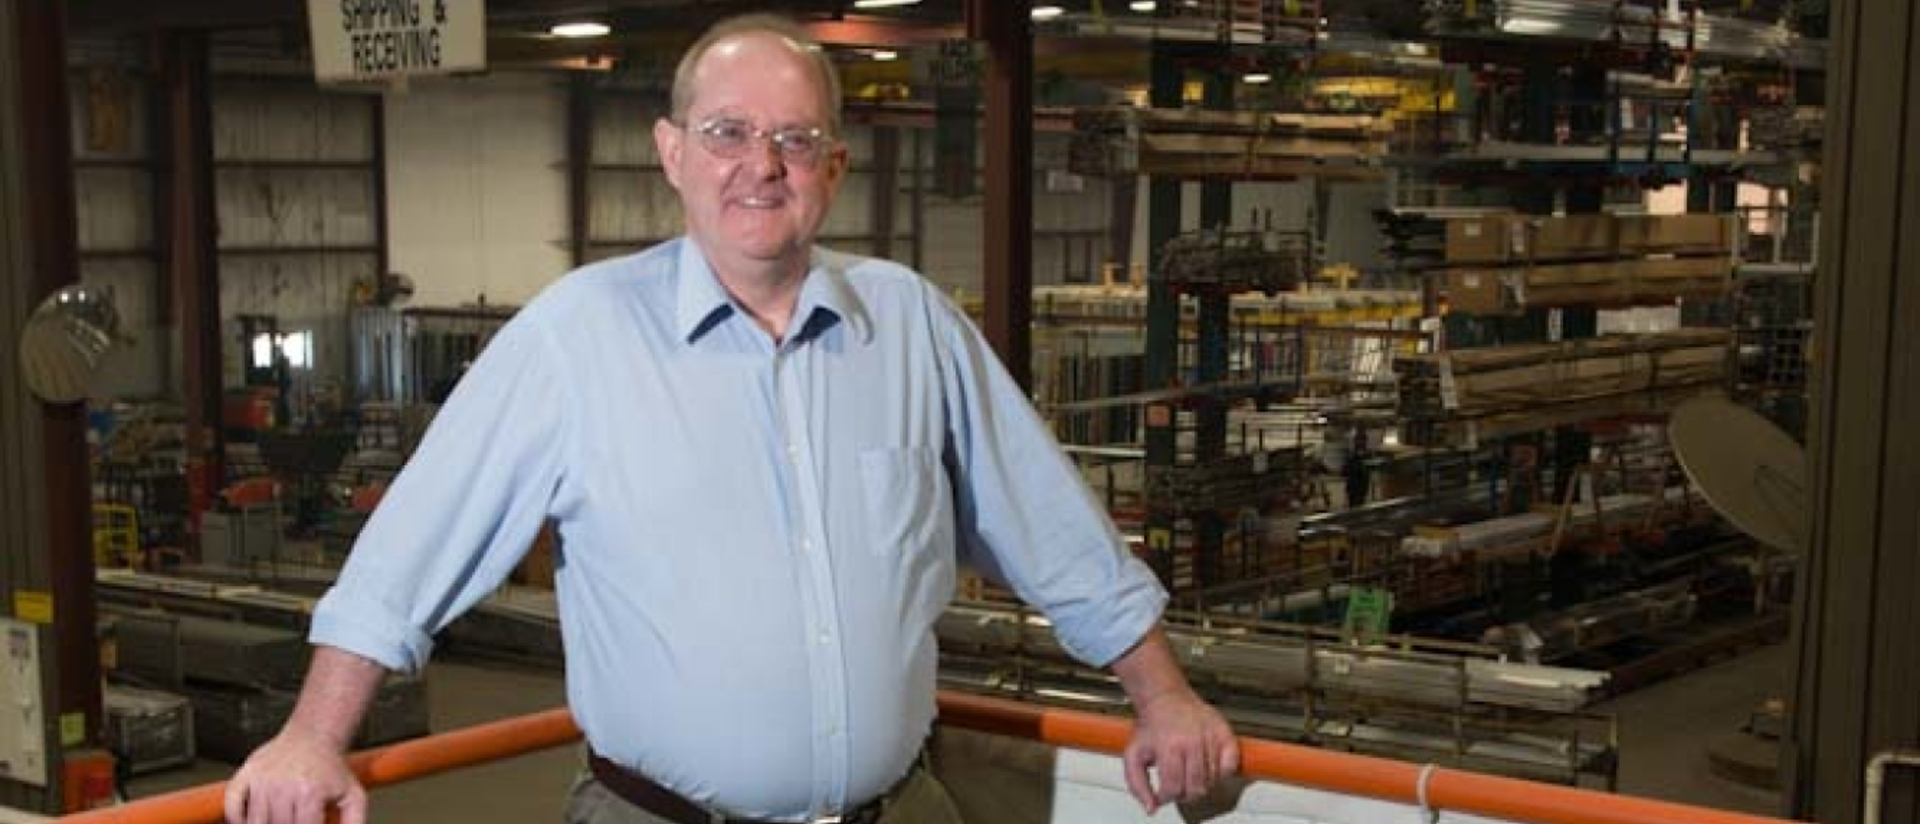 Dale Buford, Linetec Corp